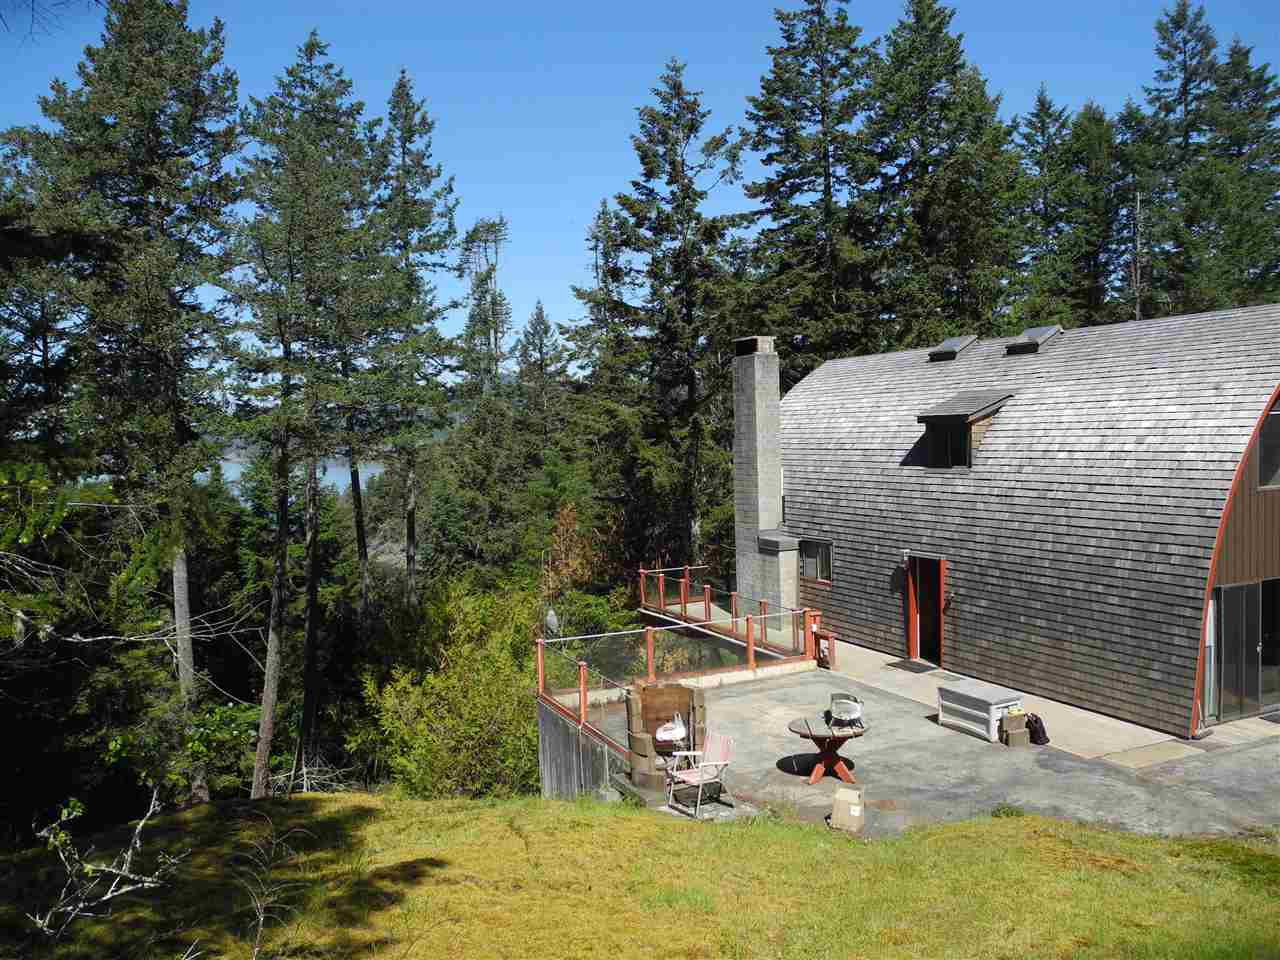 Photo 4: 4436 MCLINTOCK Road in Pender Harbour: Pender Harbour Egmont House for sale (Sunshine Coast)  : MLS(r) # R2068891